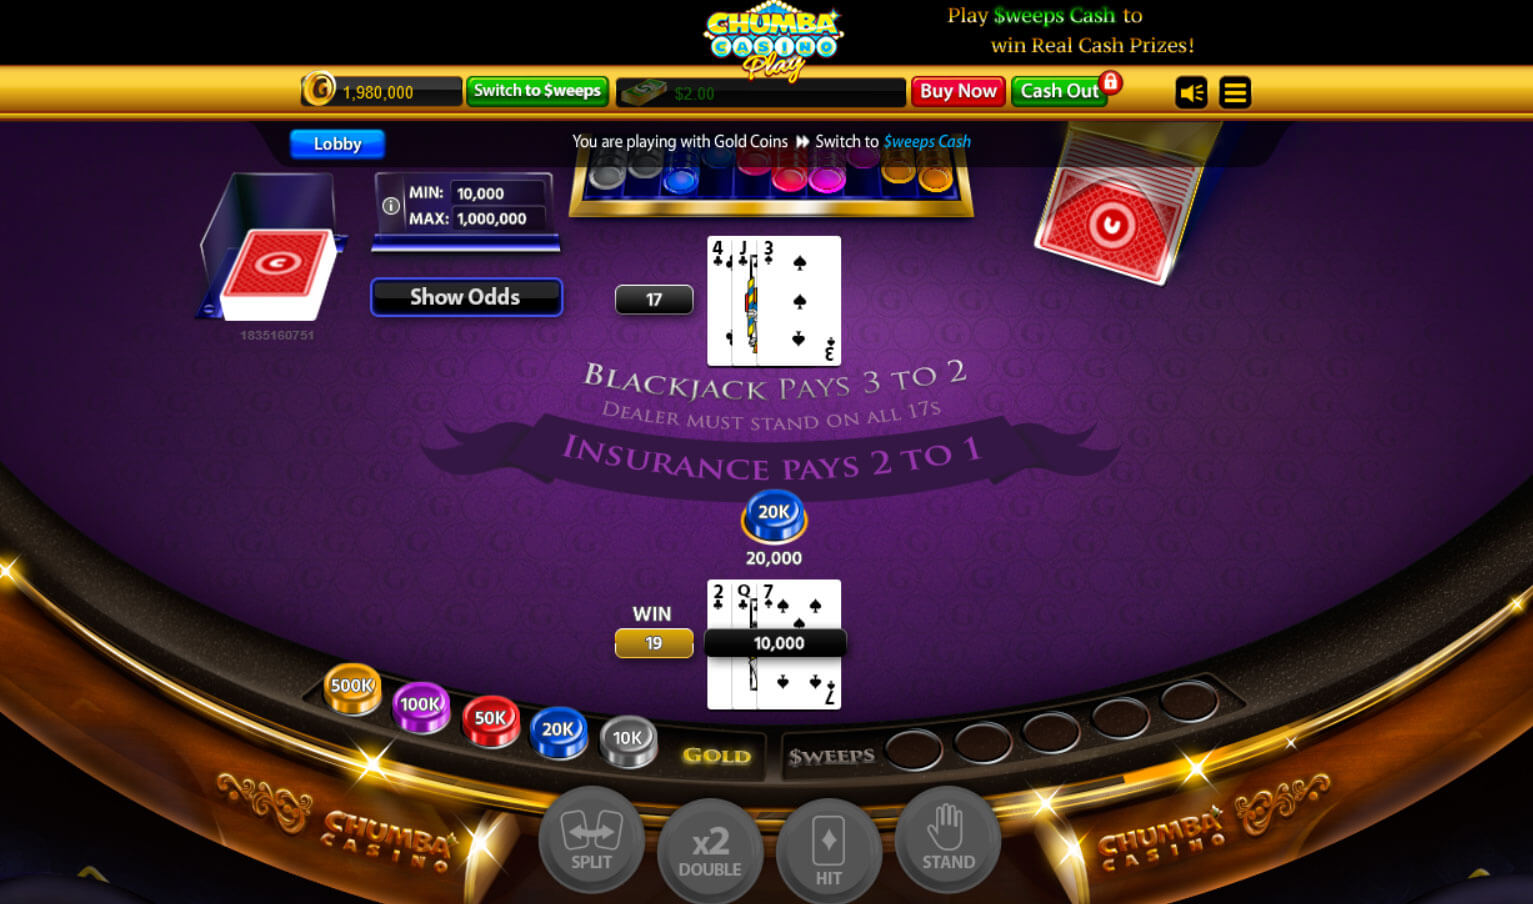 Chumba Casino - Get $2 FREE Sweeps Cash Promotion - Free Slots